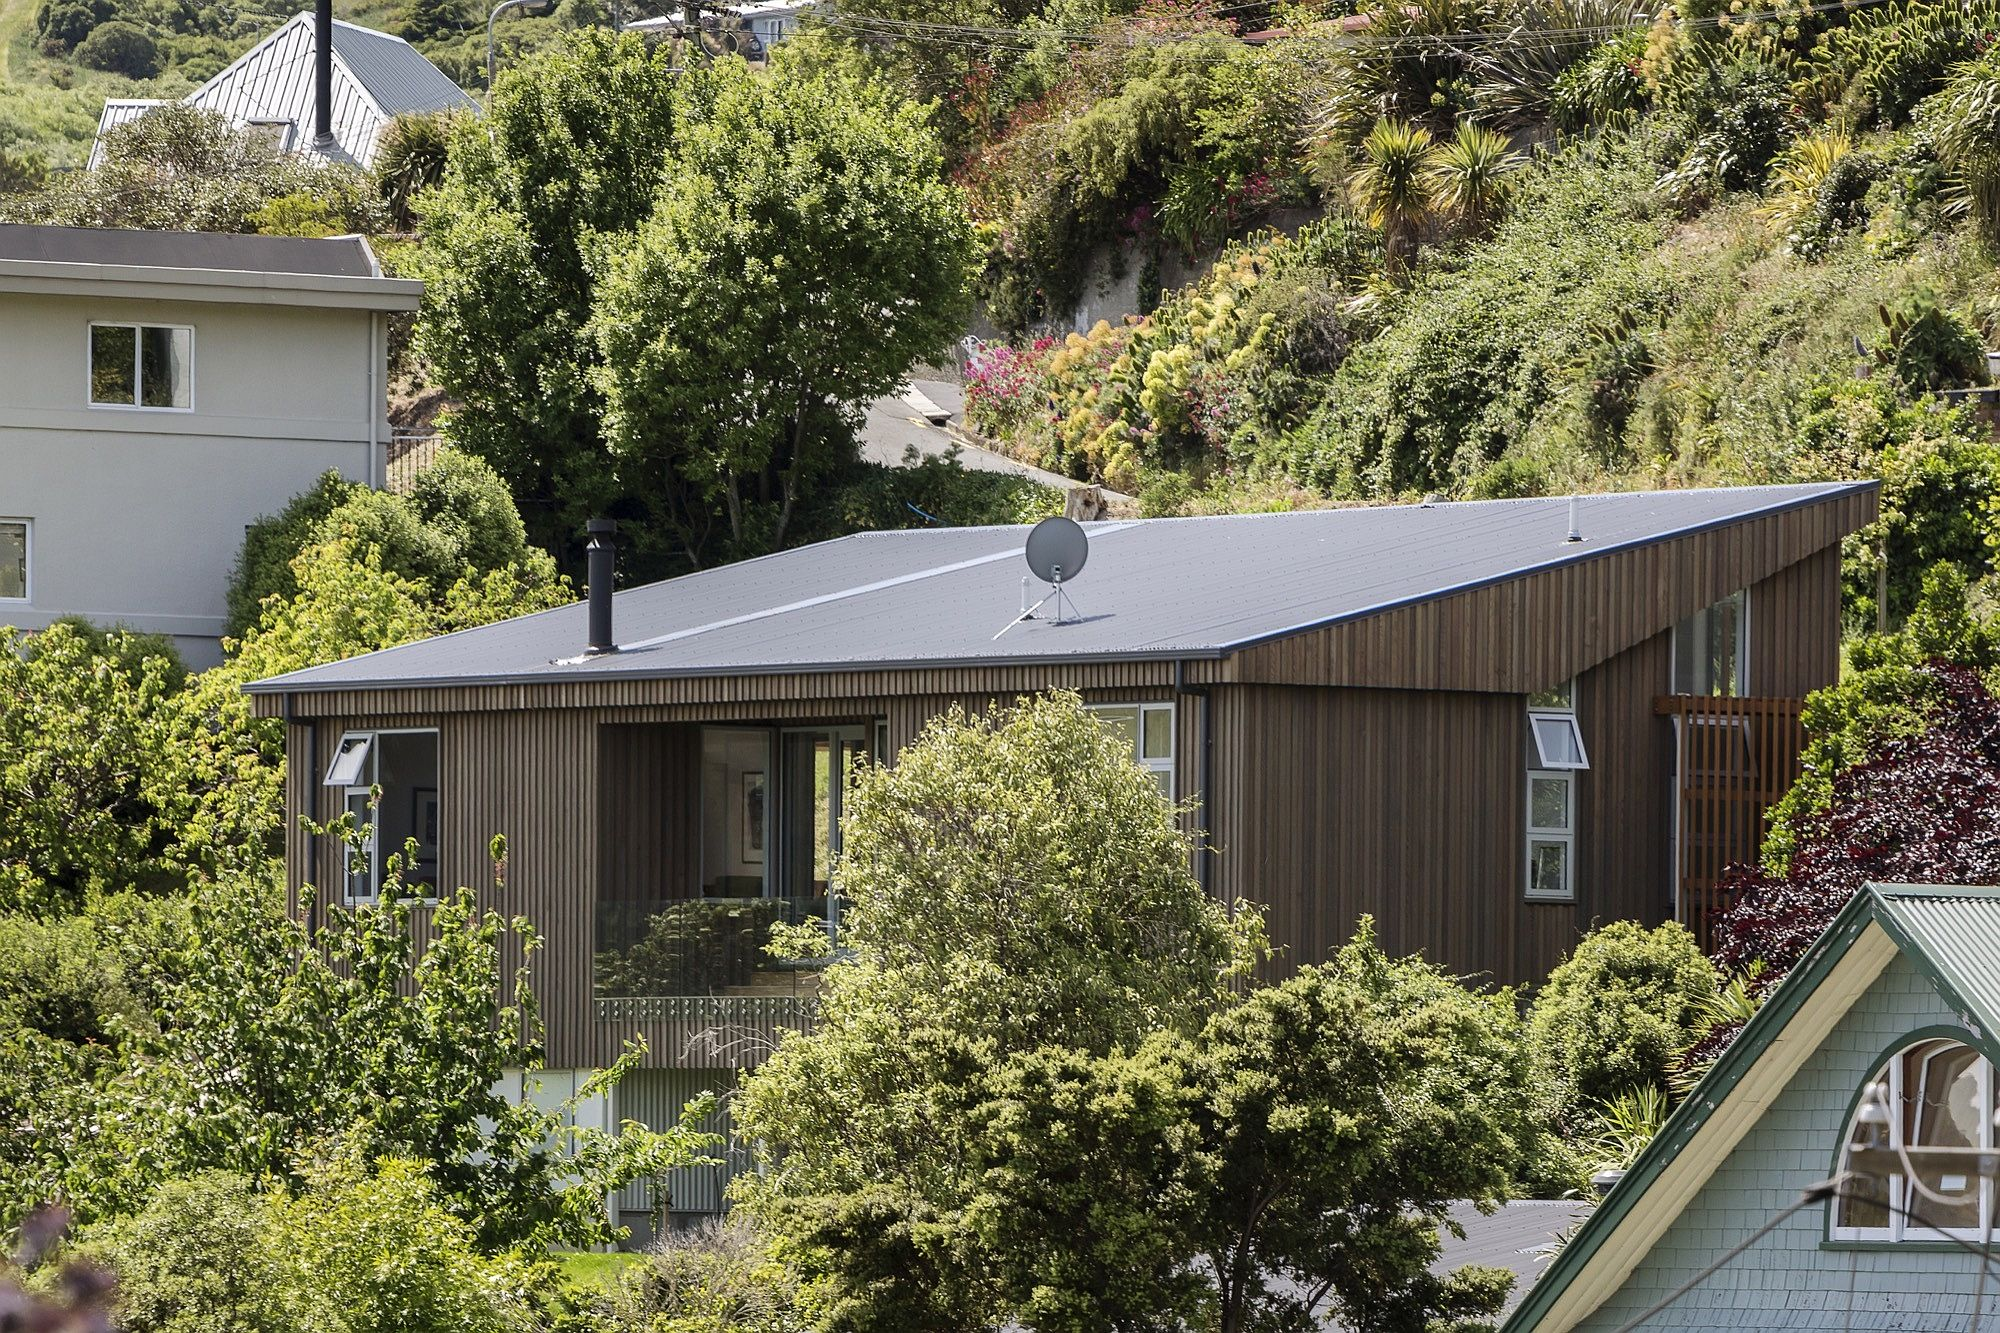 Exquisite modern home replaces quake hit villa in New Zealand